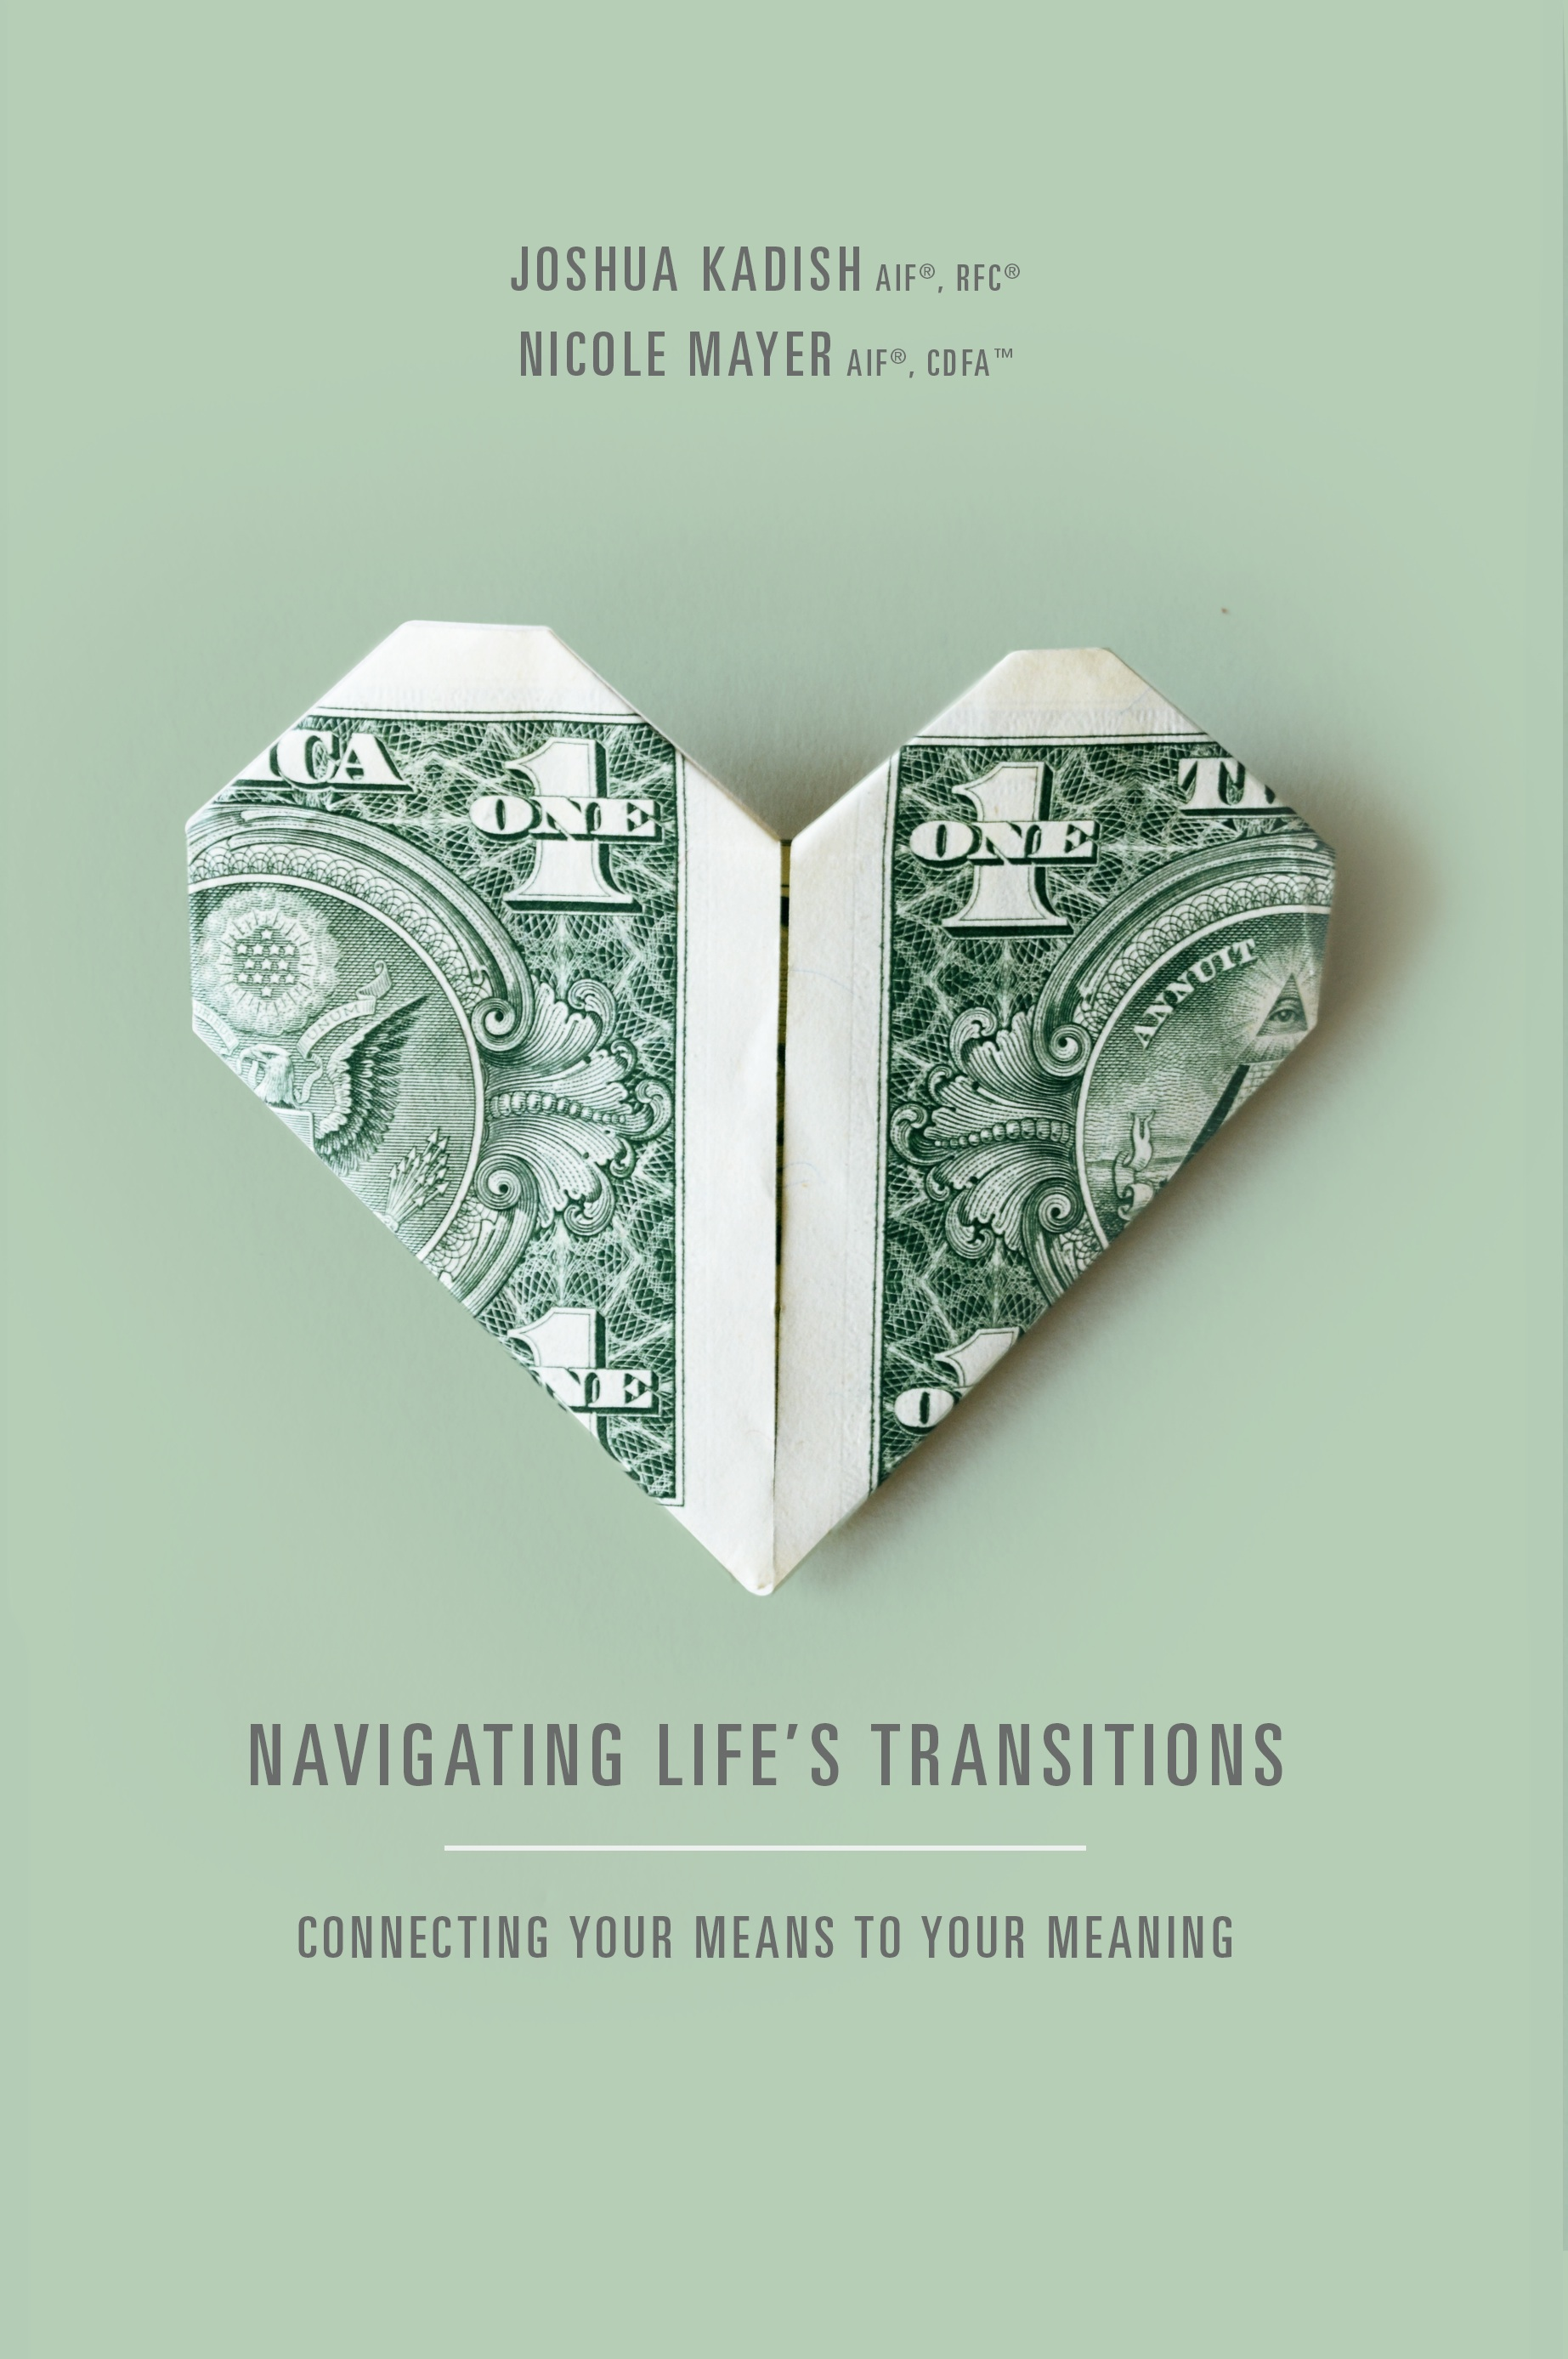 Navigating Life's Transitions: Connecting Your Means to Your Meaning